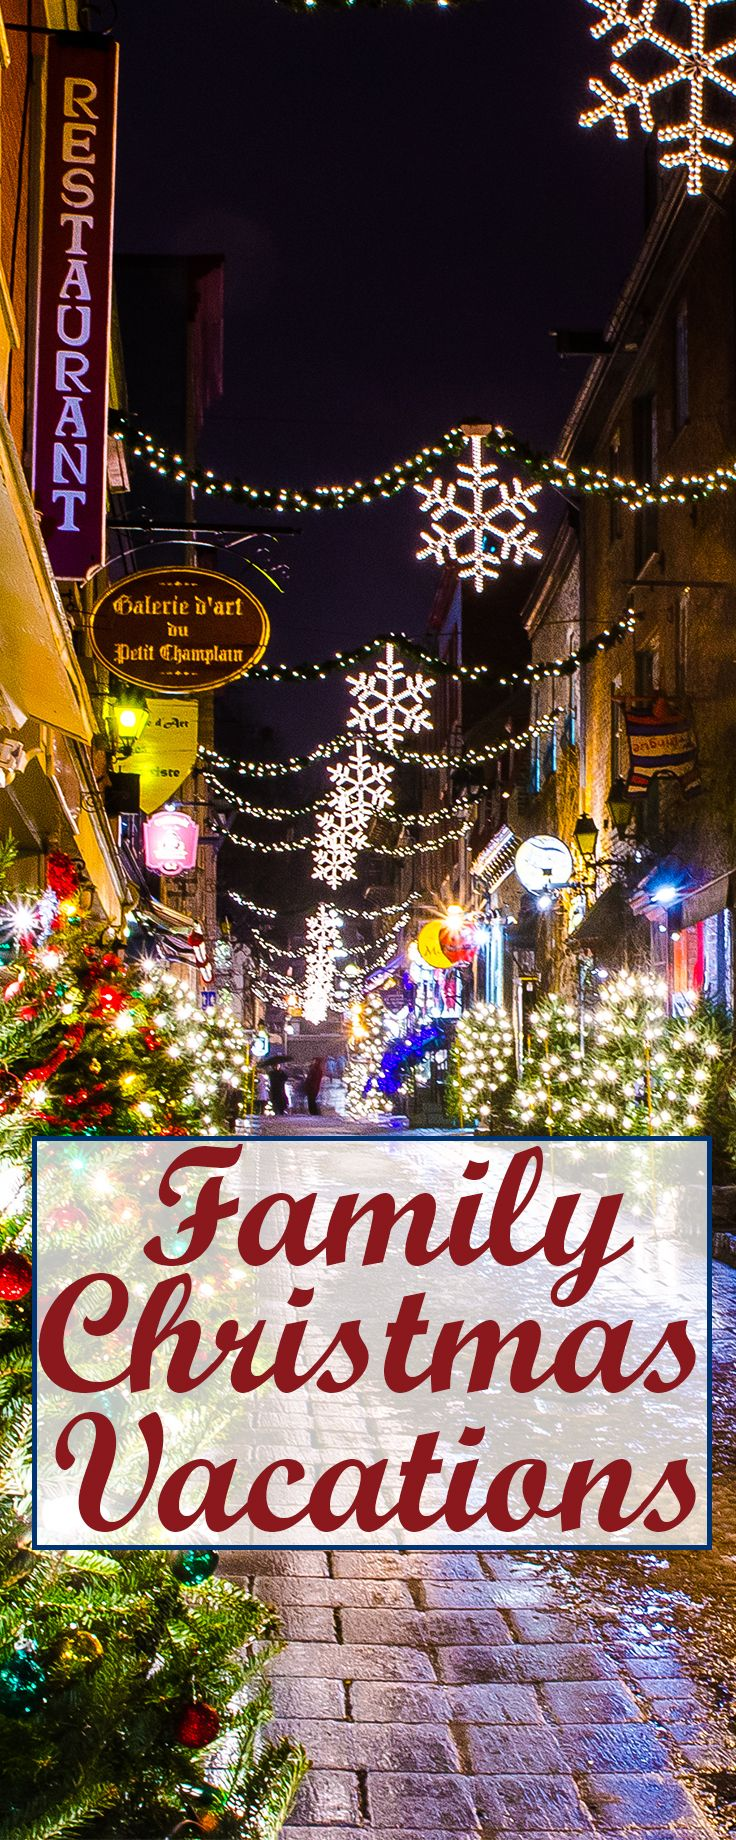 Christmas Family Vacation 6 Destinations Full of Holiday